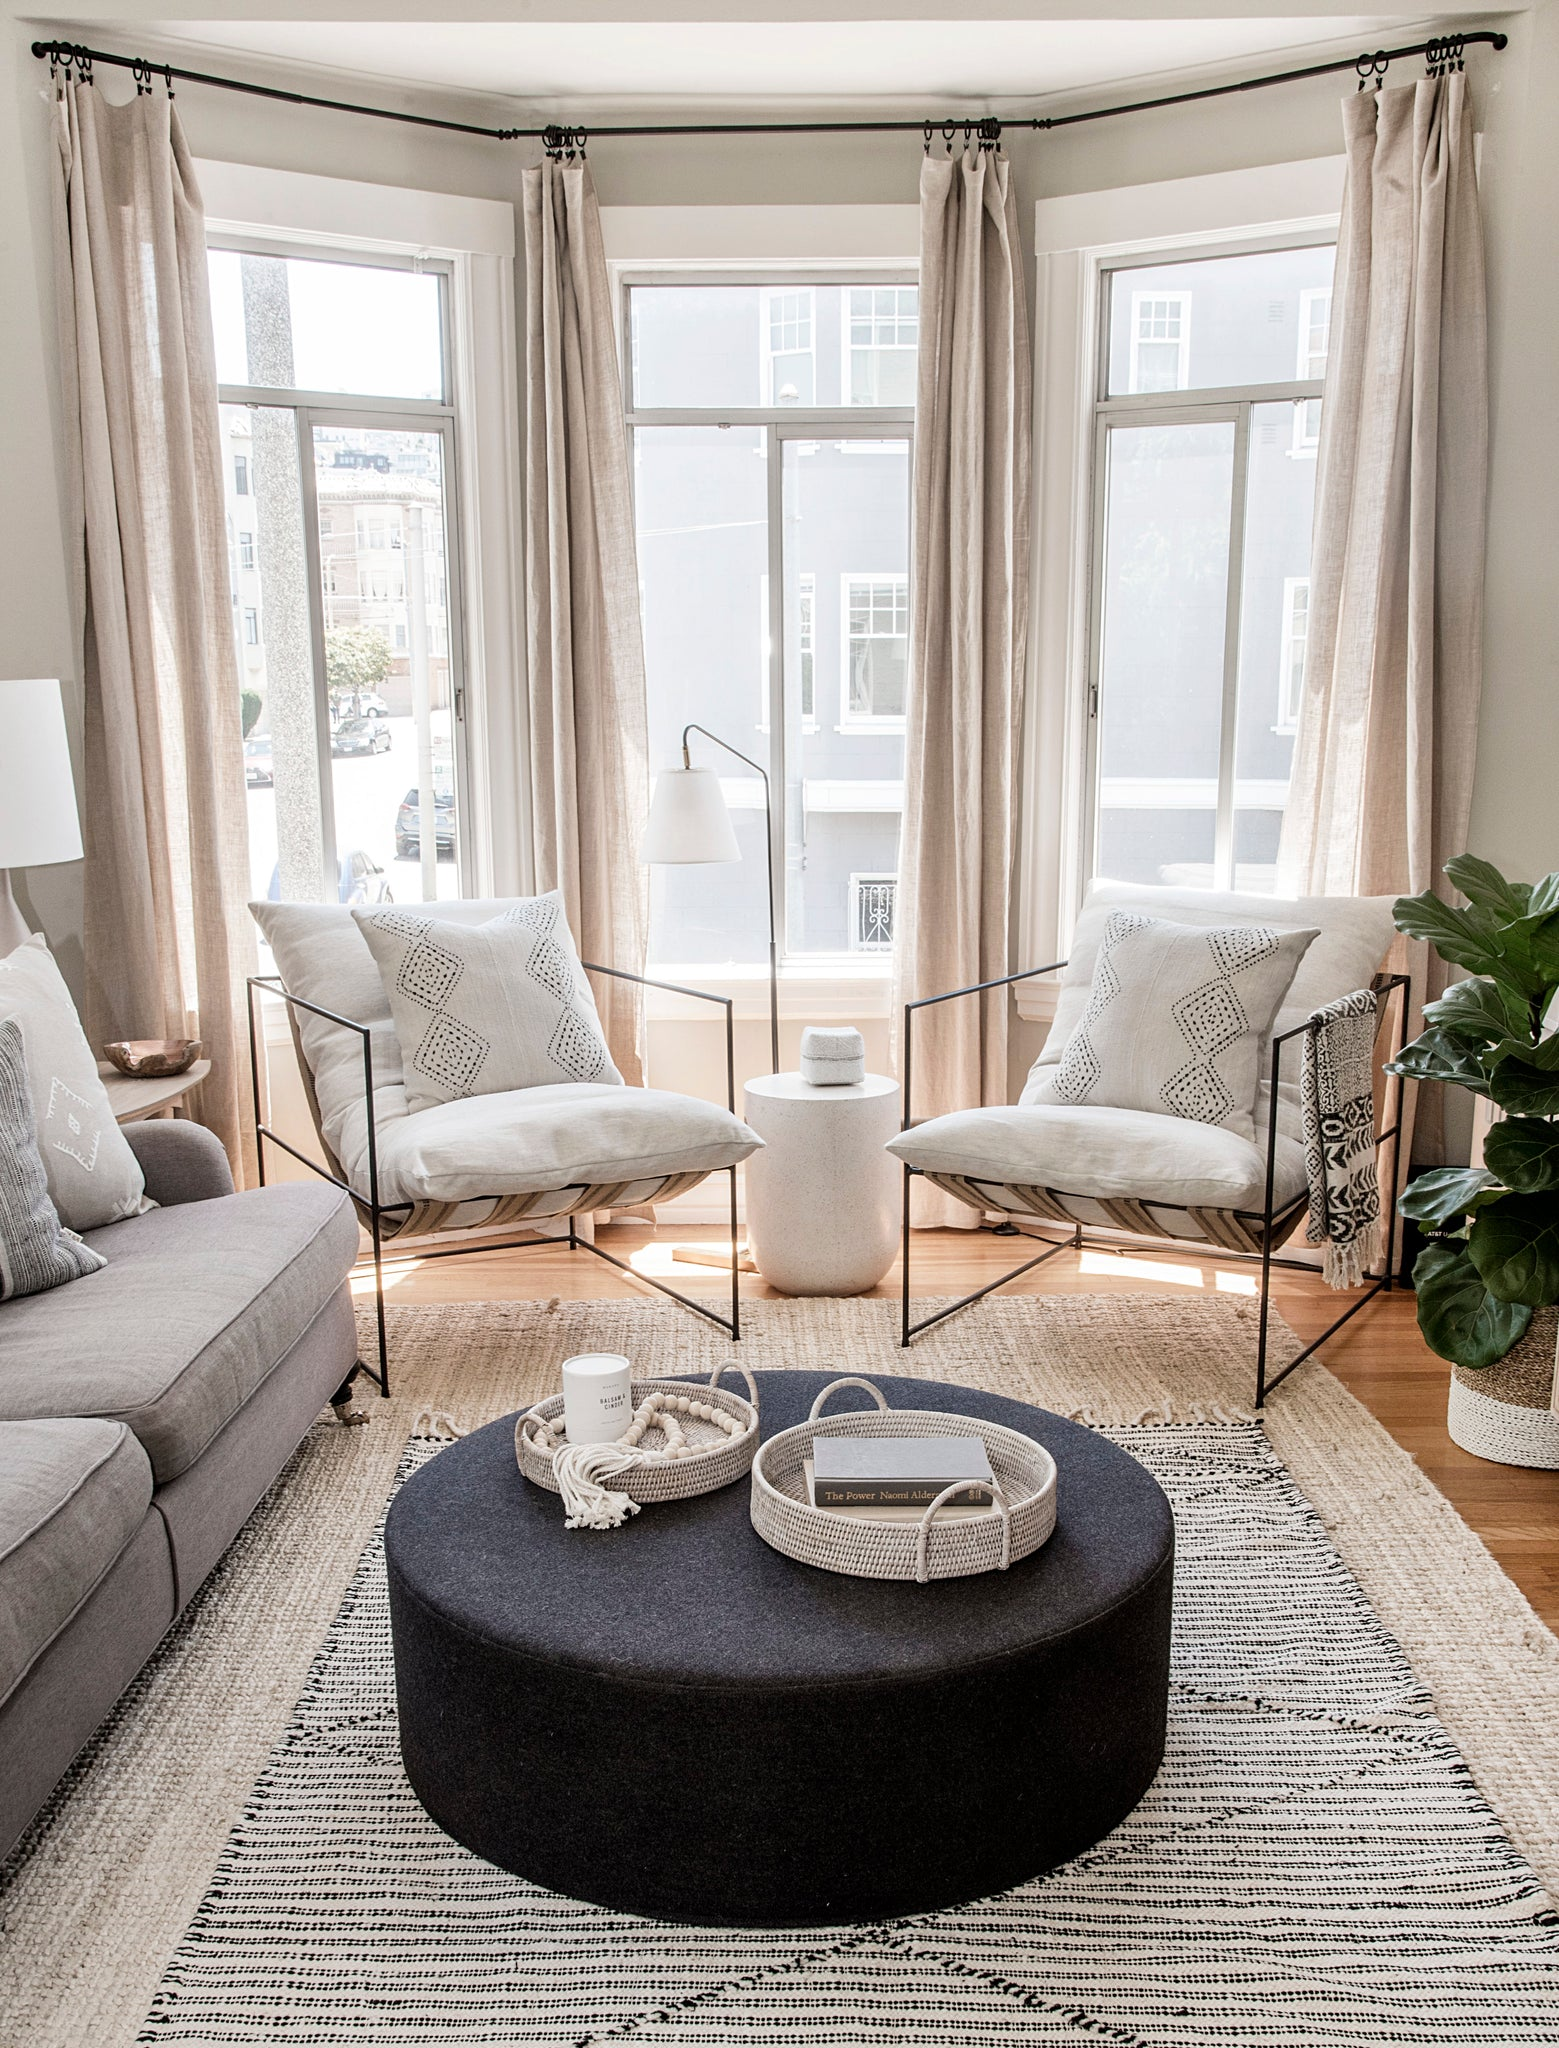 Marina Flat living room vertical shot with black frame white cushion lounge chairs and black fabric ottoman featuring bali beads, handwoven Moroccan area rug in black and white, traveled pillows, plant, and soft neutral palette.